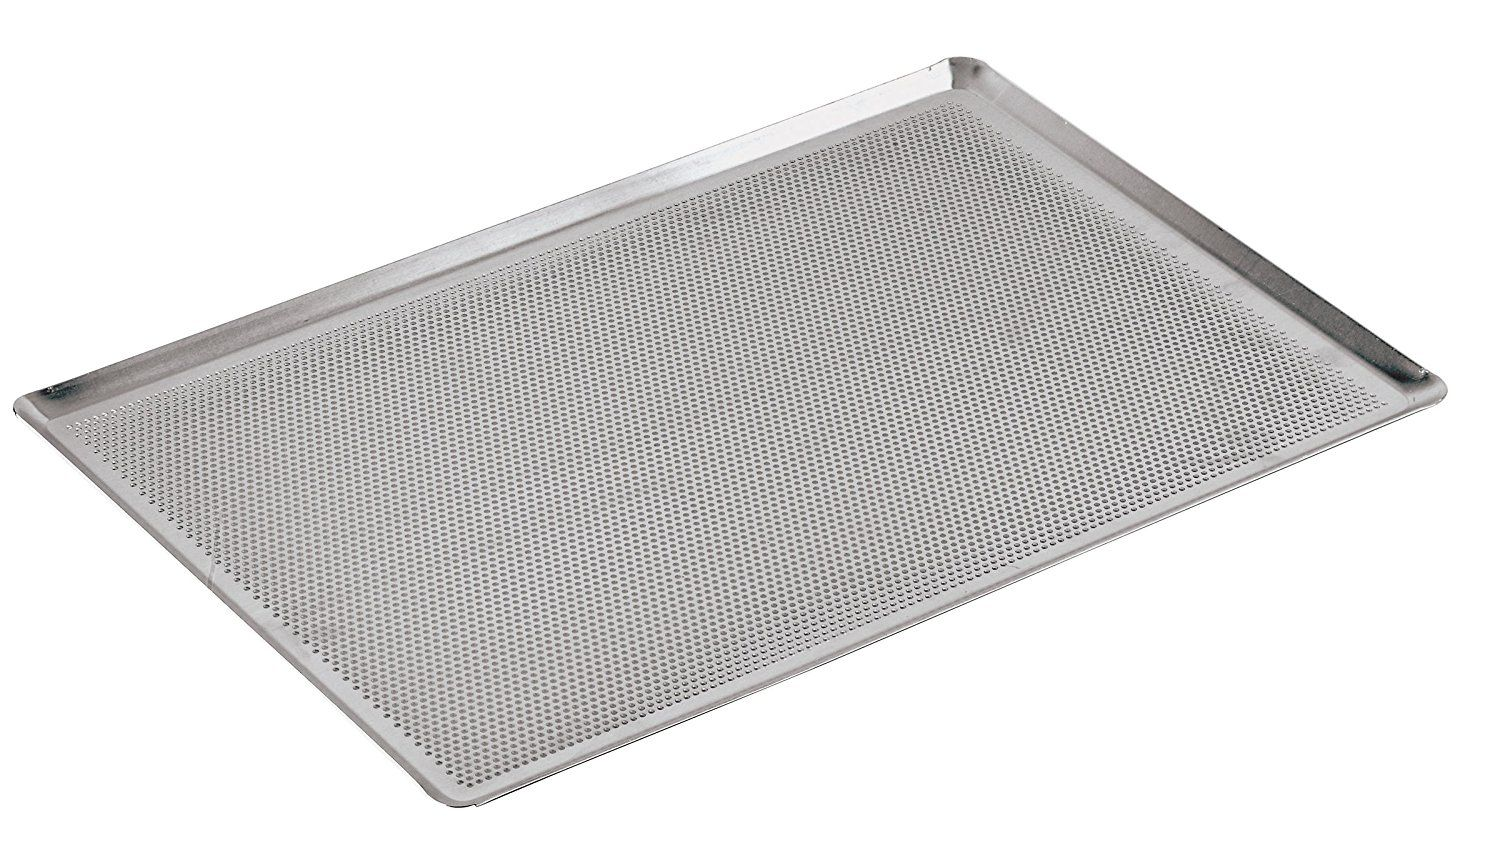 Paderno World Cuisine 15 3 4 Inch By 11 7 8 Inch Perforated Aluminum Baking Sheet With 45 Degree Angled Paderno World Cuisine Baking Necessities World Cuisine